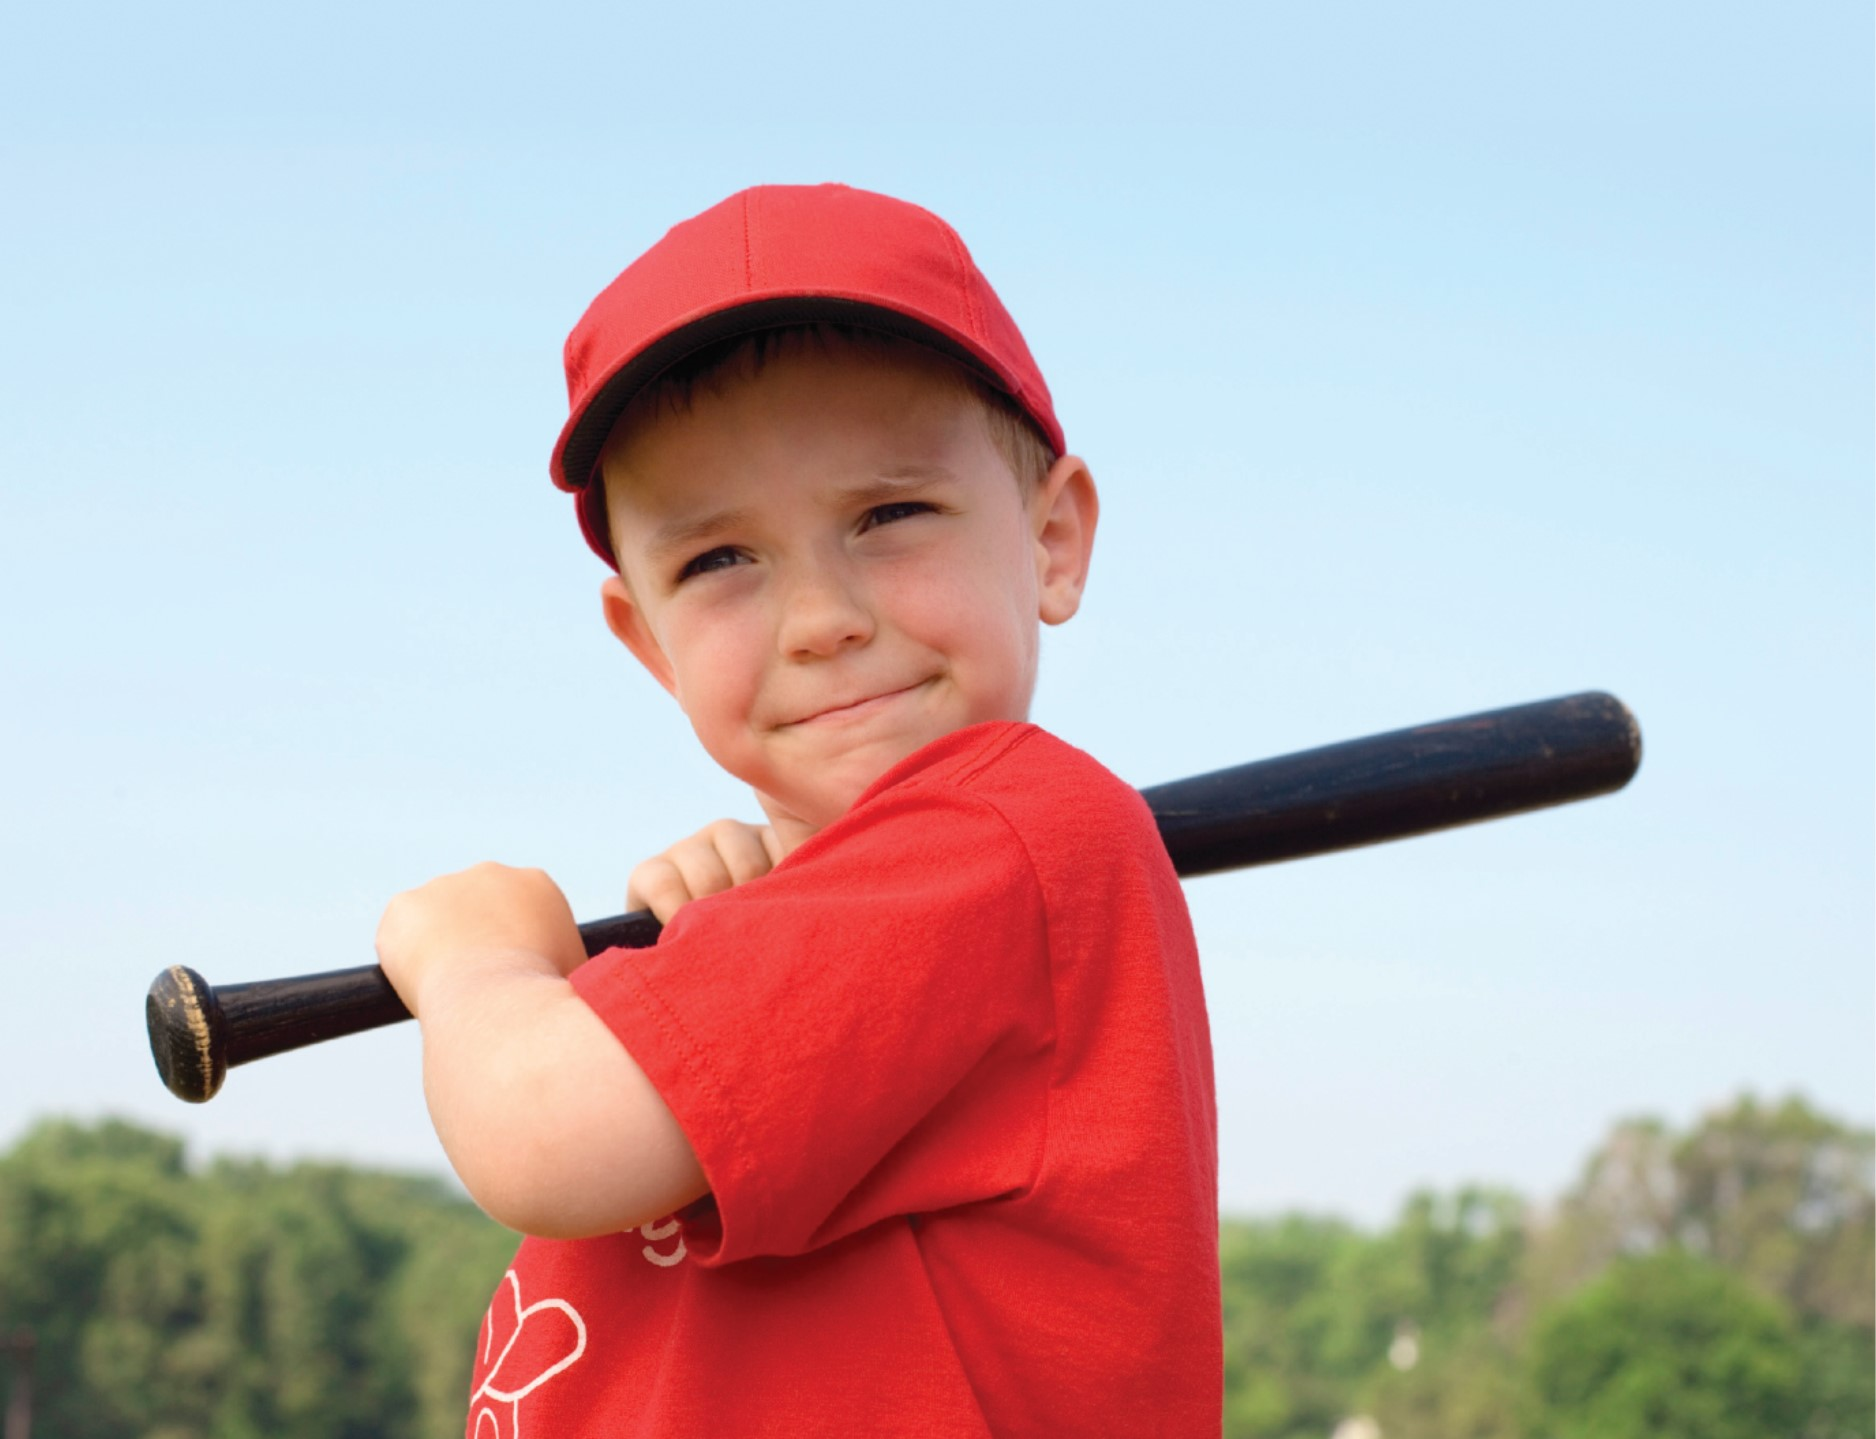 Batter up!  When you show your support for our youth programs, the whole community benefits.